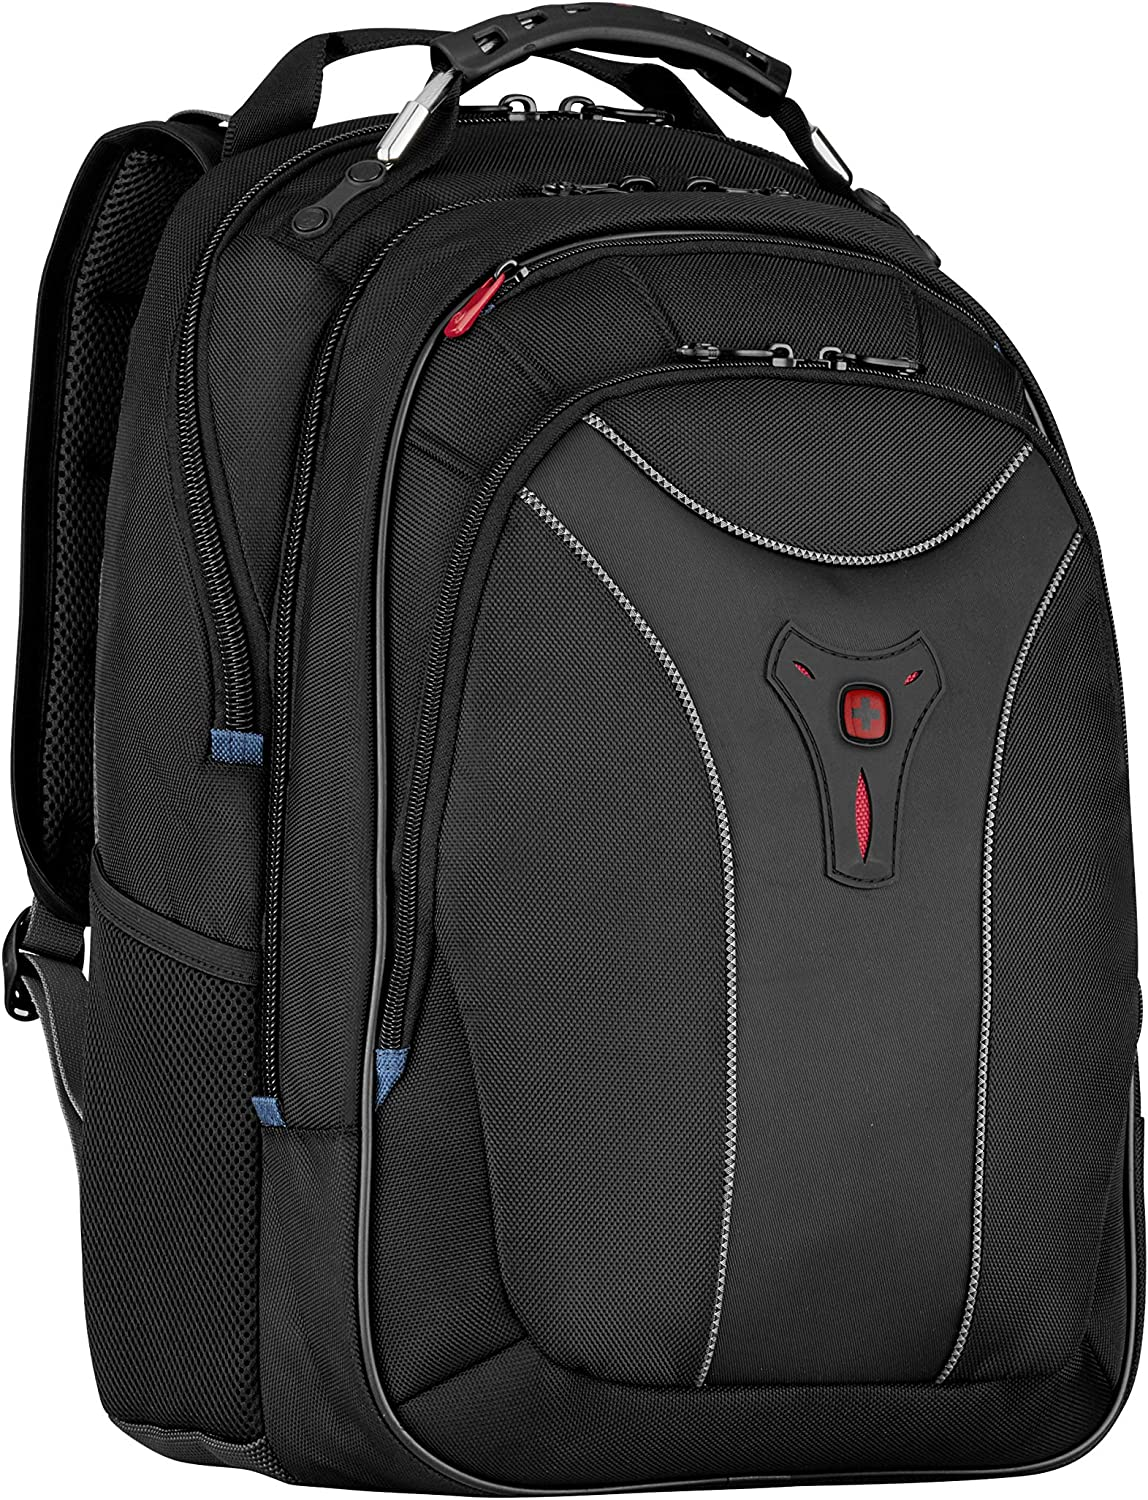 SwissGear Carbon II Black Notebook Backpack-Fits Apple MacBook Pro 15 inch and 17 inch